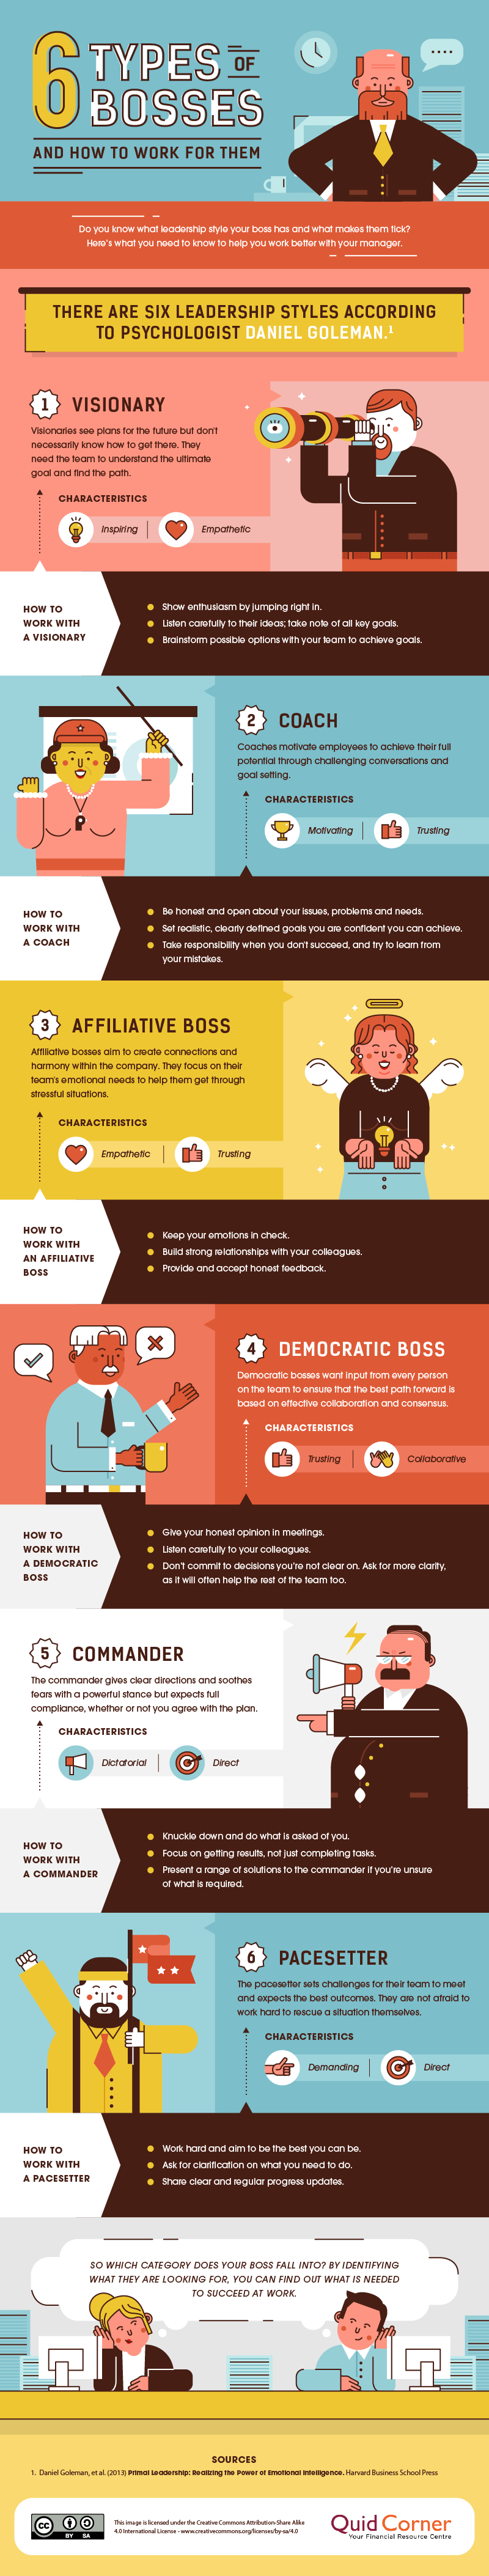 Understanding Your Boss: 6 Personality Types - Infographic